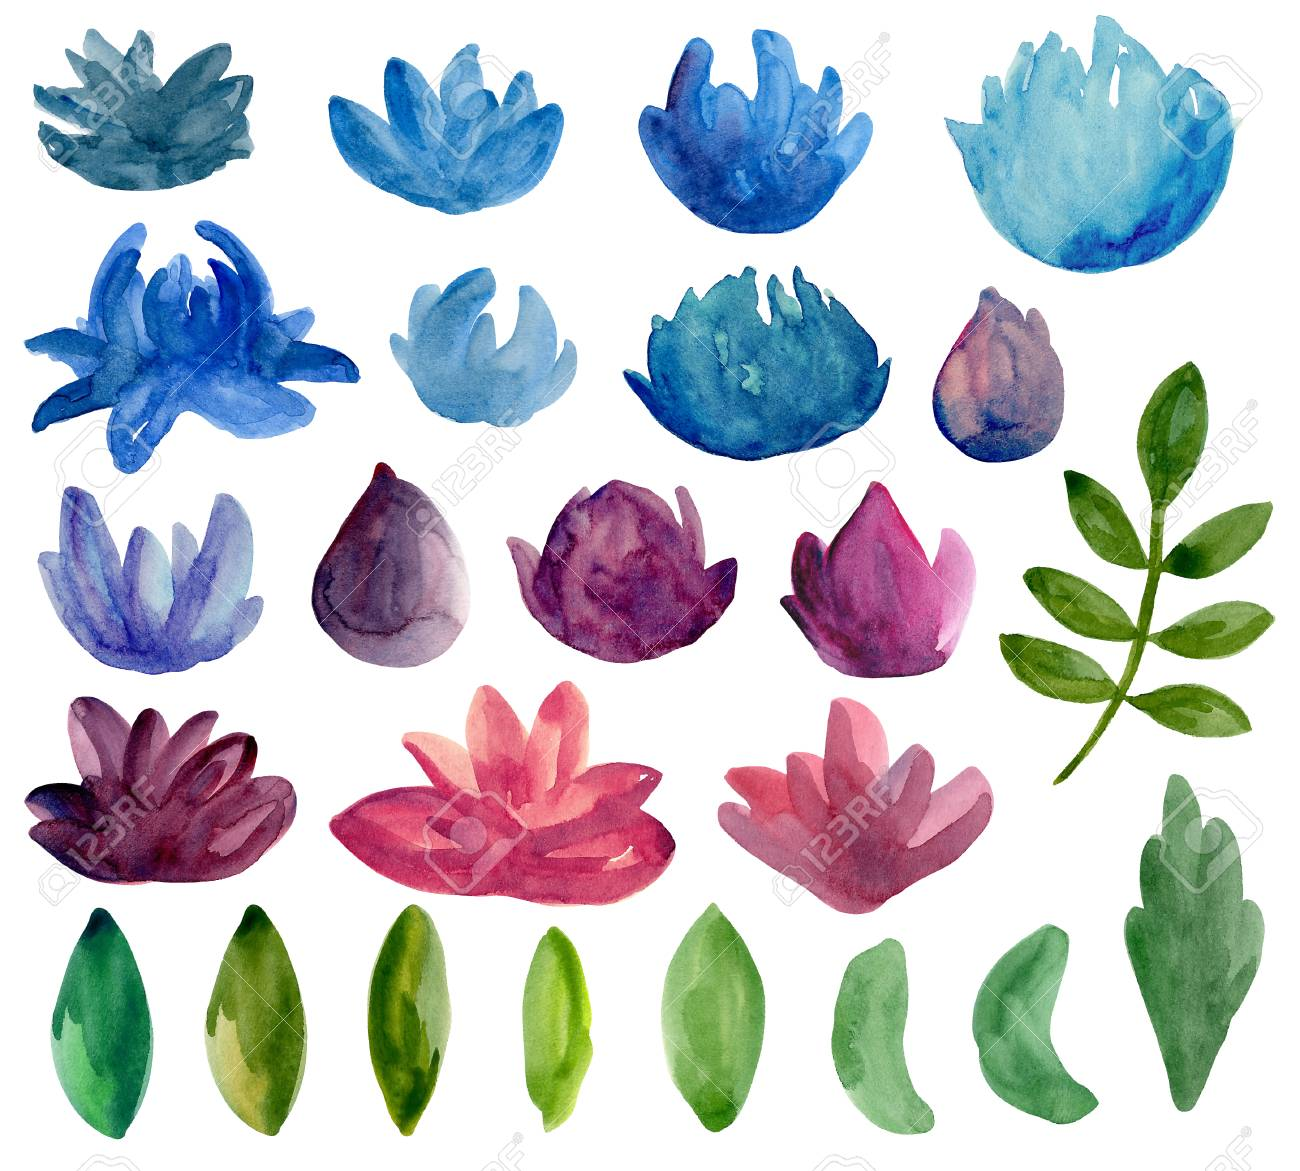 hight resolution of stock photo watercolor abstract flowers clipart blue and purple floral